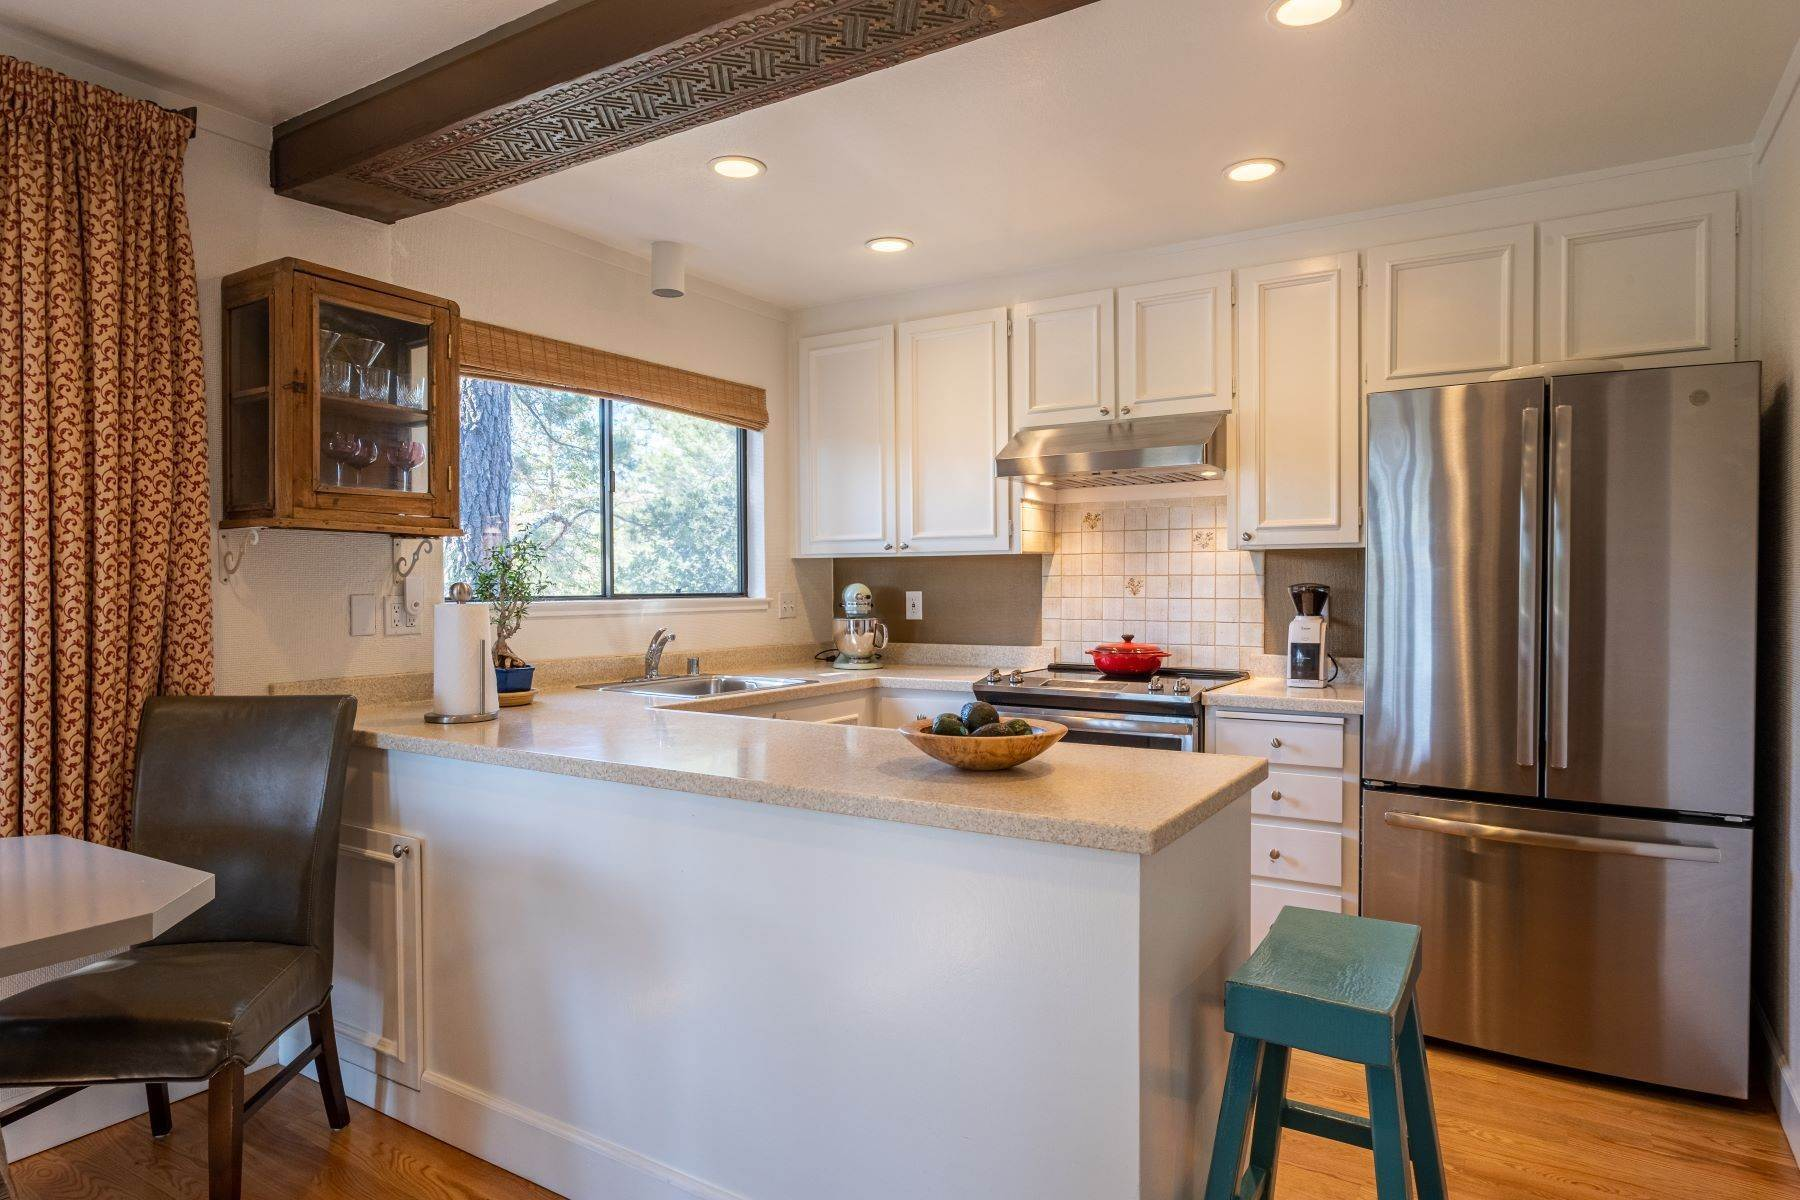 11. Condominiums for Sale at Luxury Townhome with Elevator 130 El Condor Court San Rafael, California 94903 United States